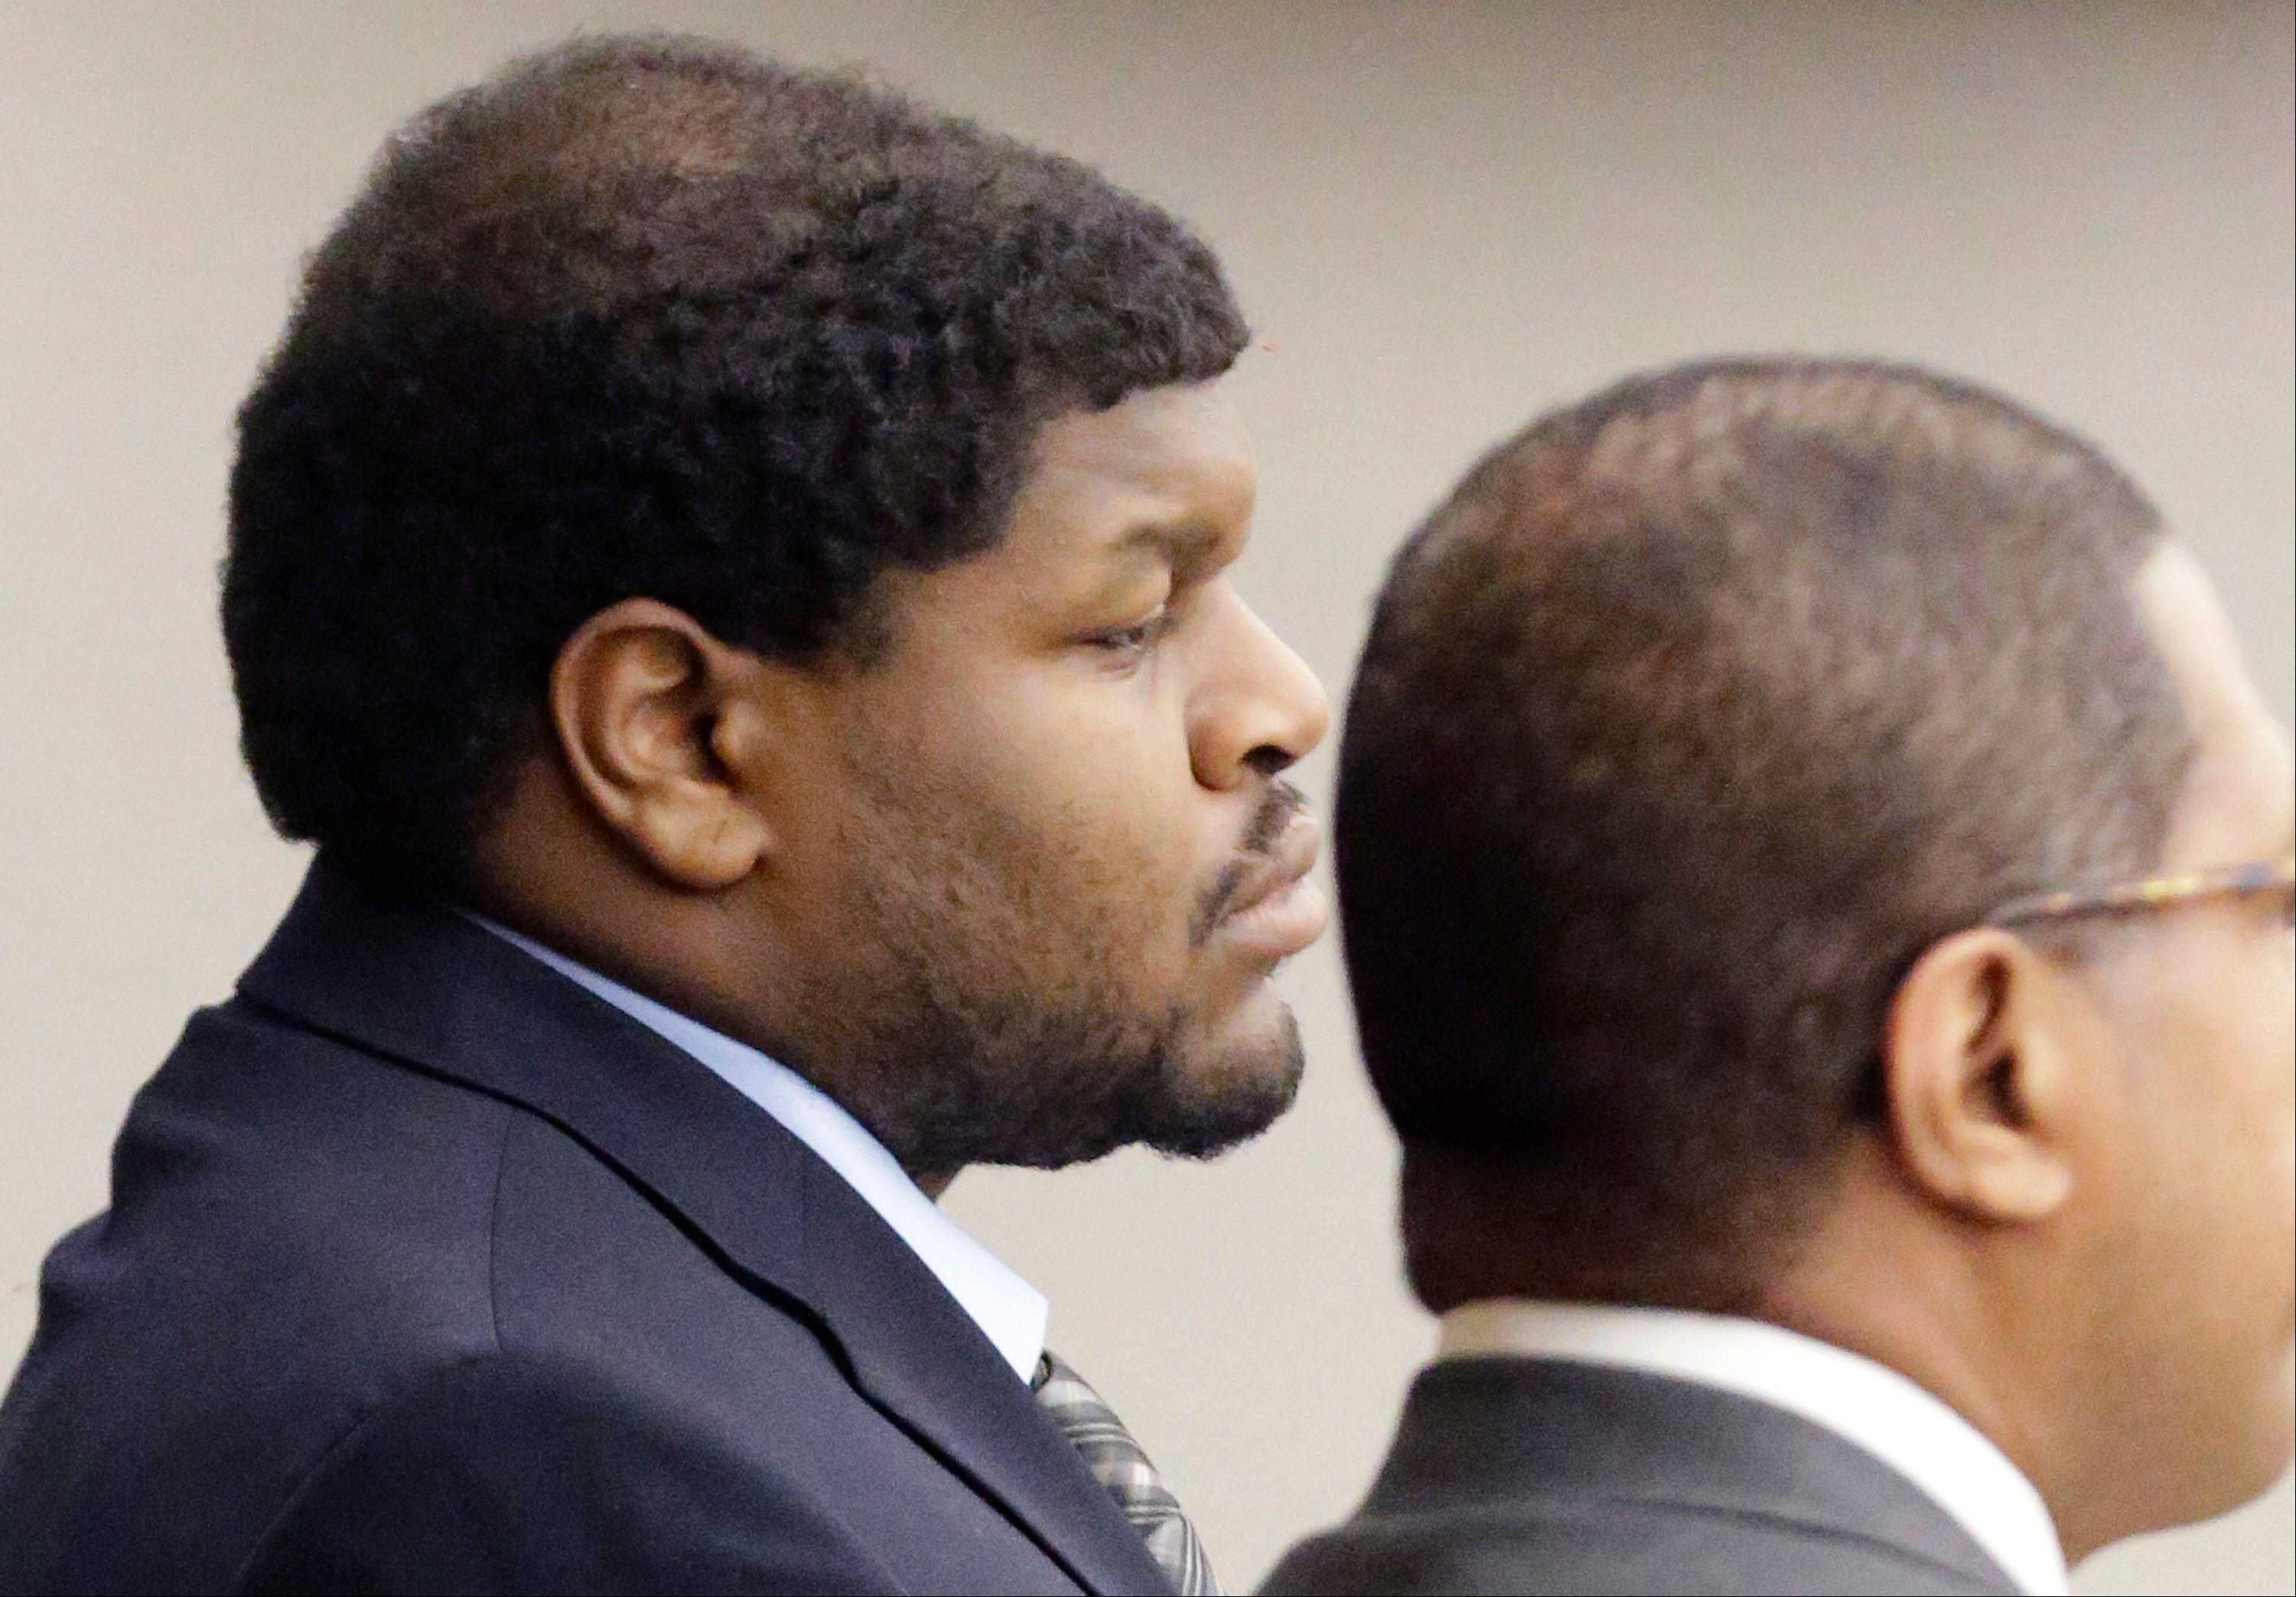 Josh Brent, left, former Dallas Cowboys NFL football player, listens with one of his lawyers Kevin Brooks while the punishment for his intoxication manslaughter conviction is read in court Friday, Jan. 24, 2014, in Dallas. Brent was sentenced to 180 days in jail and 10 years of probation for a drunken car crash that killed his friend and teammate, Jerry Brown. (AP Photo/Pool/LM Otero, Pool)